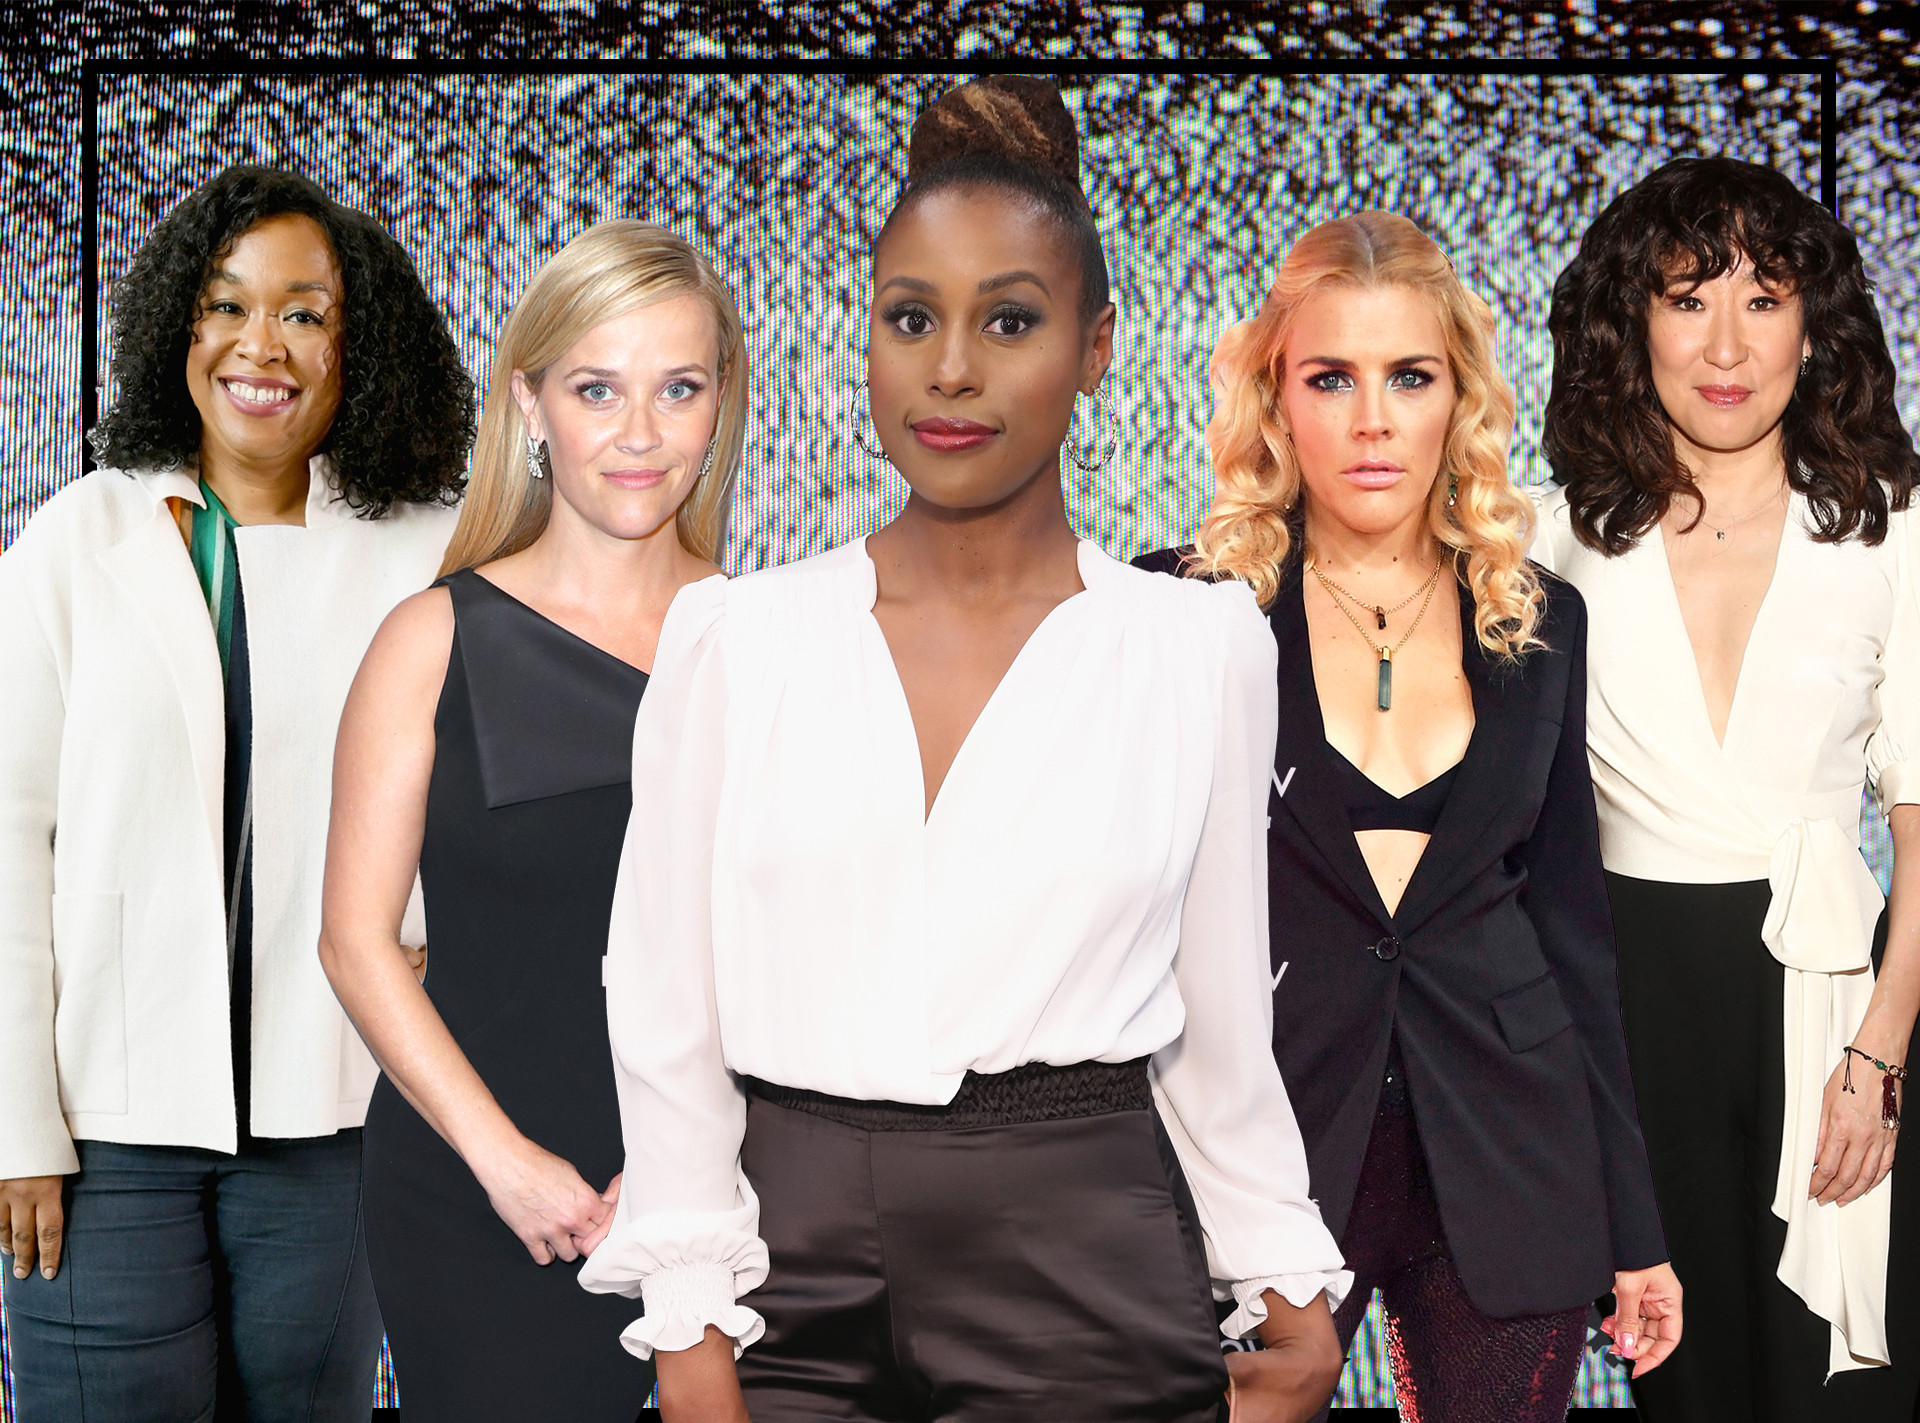 Let's Go Girls! These 15 Women Are Changing TV as We Know It